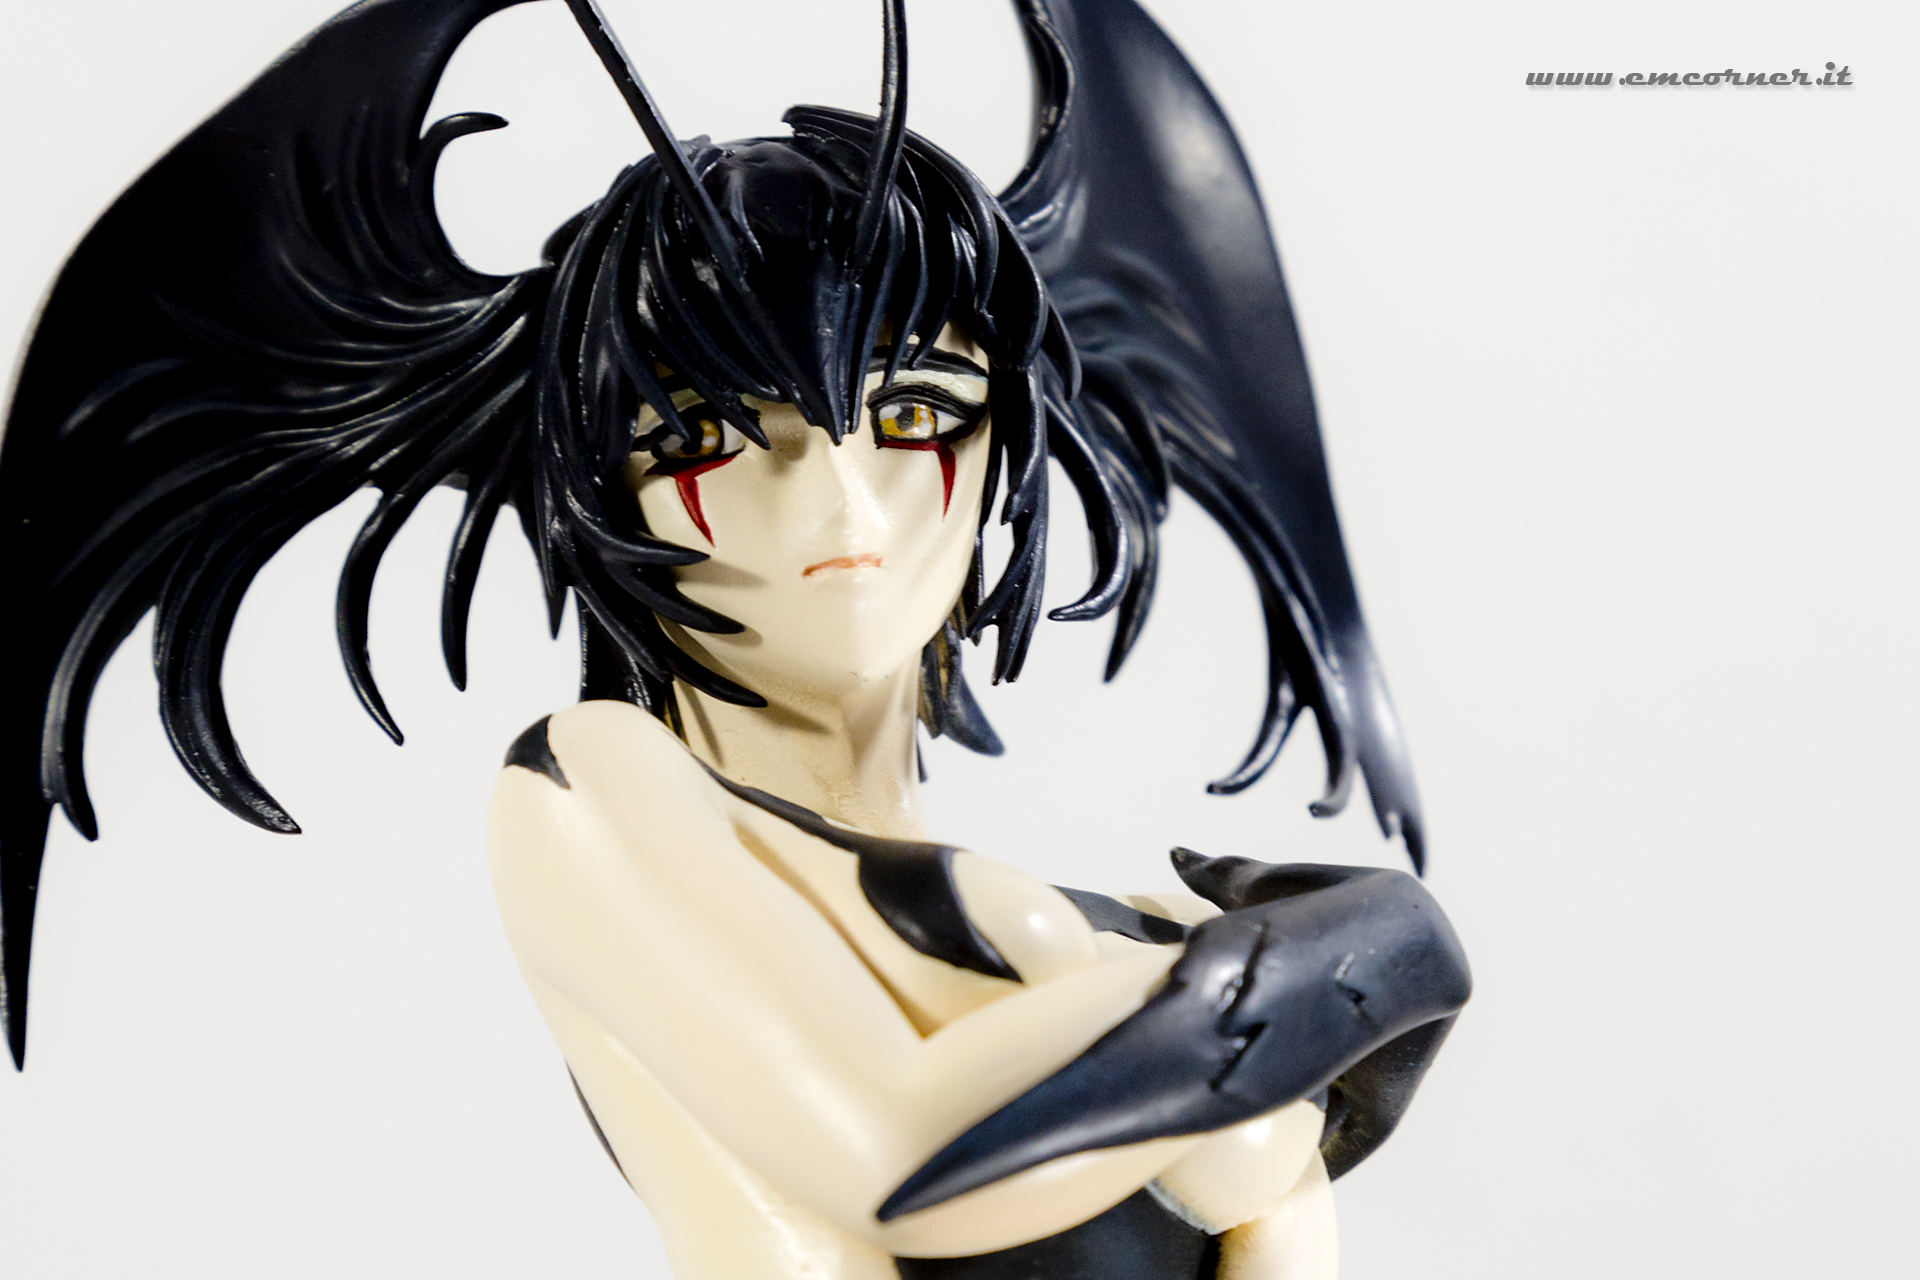 new-line-devilman-devil-lady-pre-painted-coldcast-2_-emcorner-it_-9